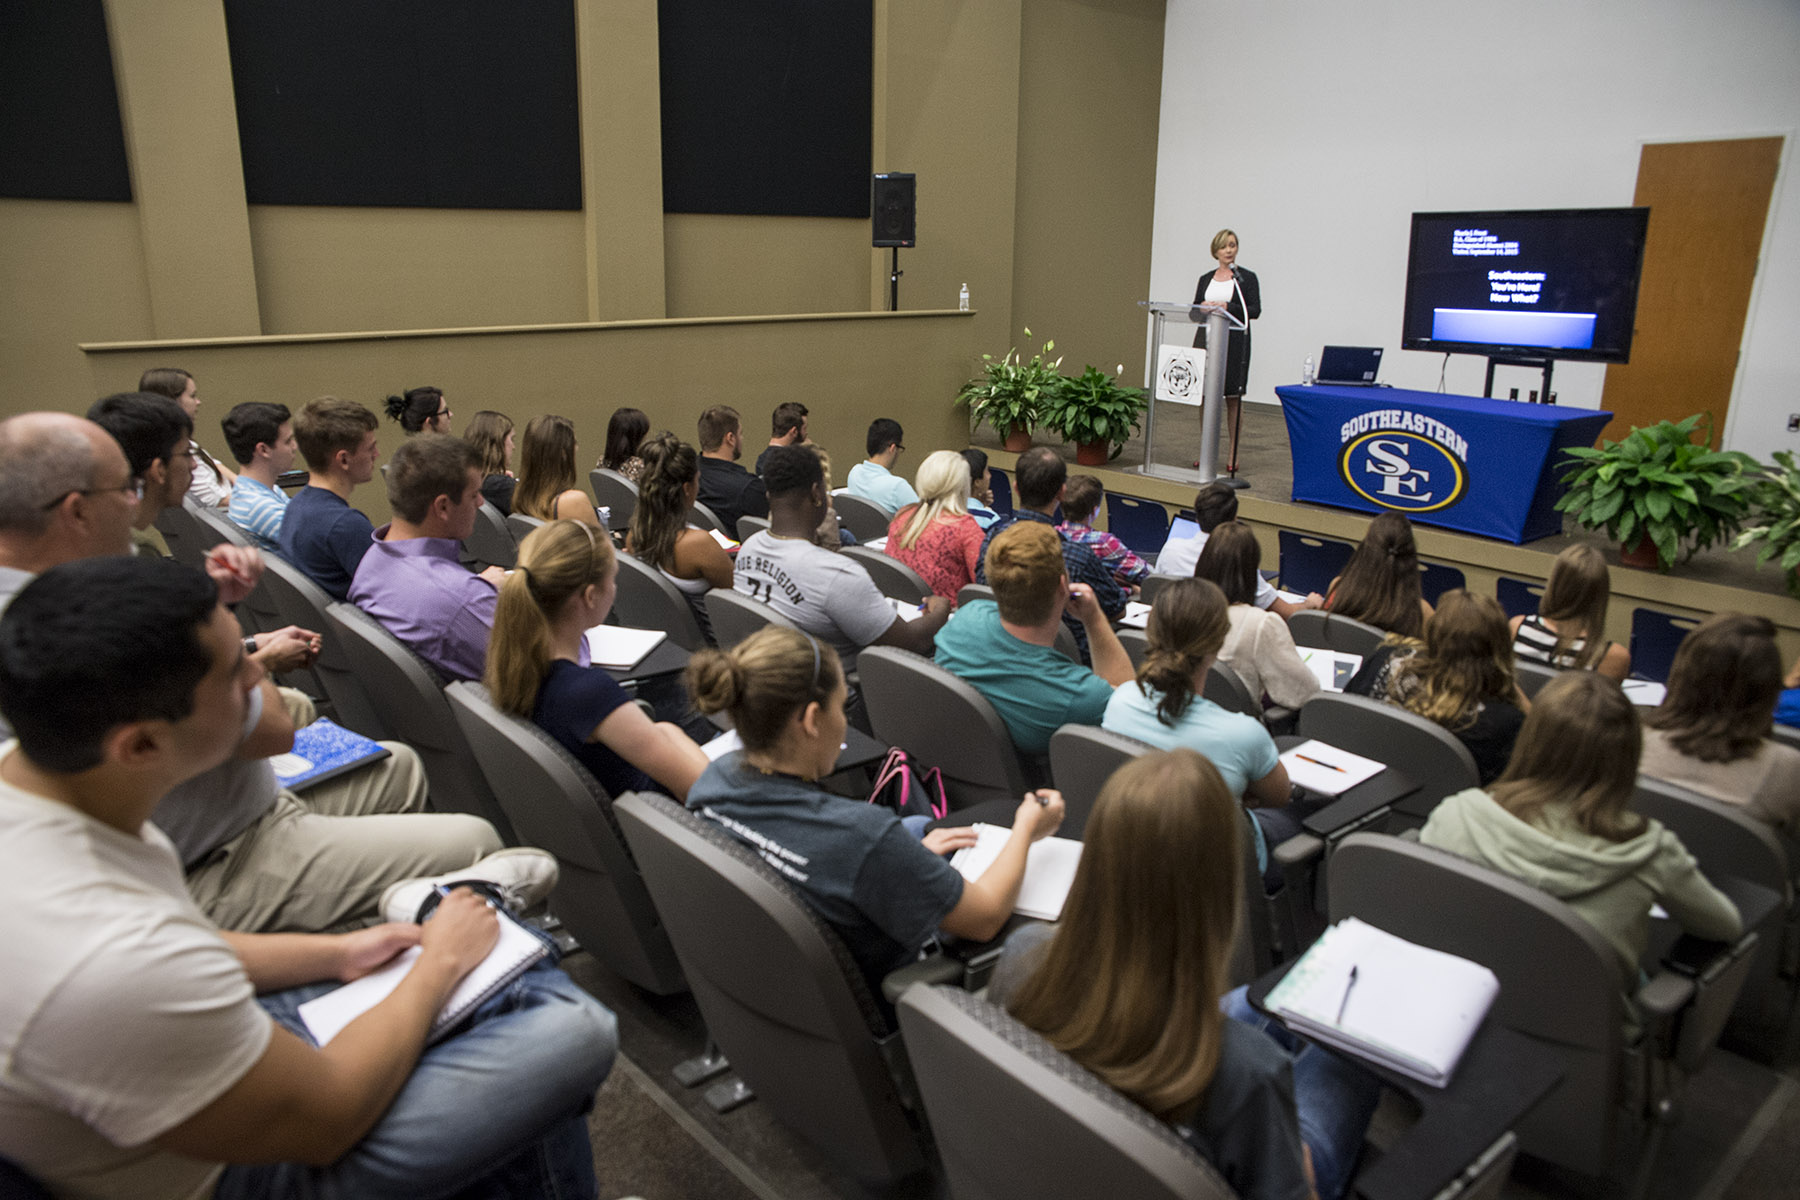 Sharla Frost Speaks to Students at Southeastern Oklahoma